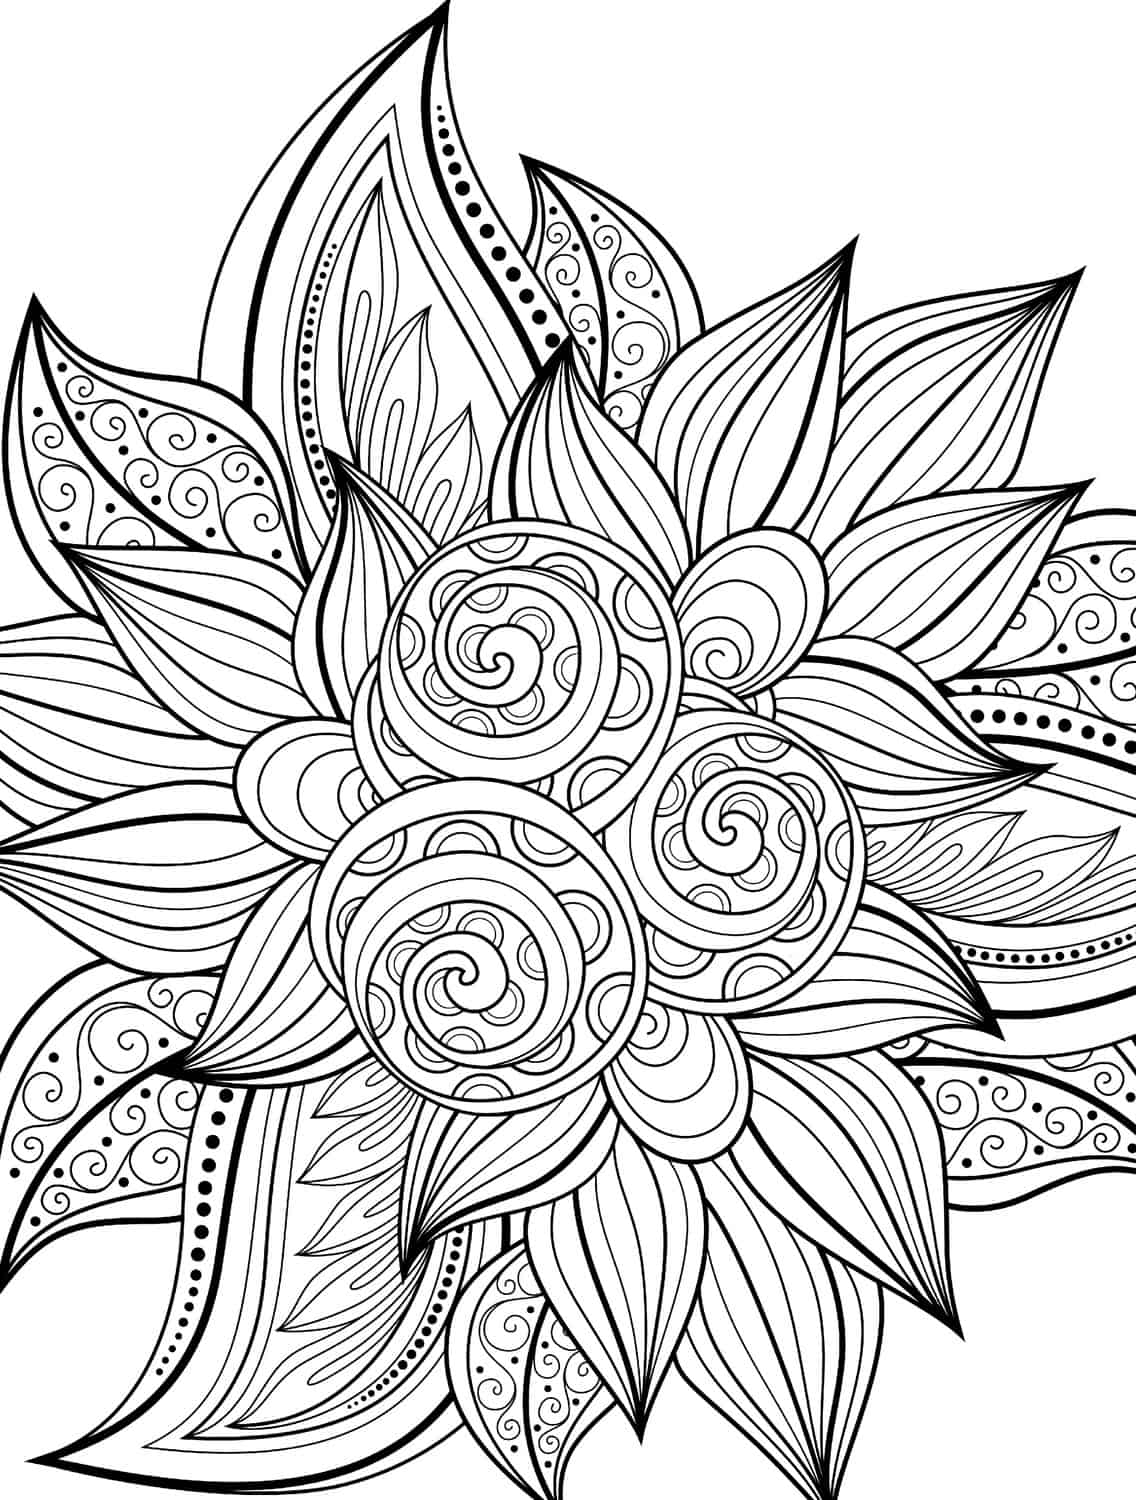 Gallery For gt Crazy Coloring Pages Printable